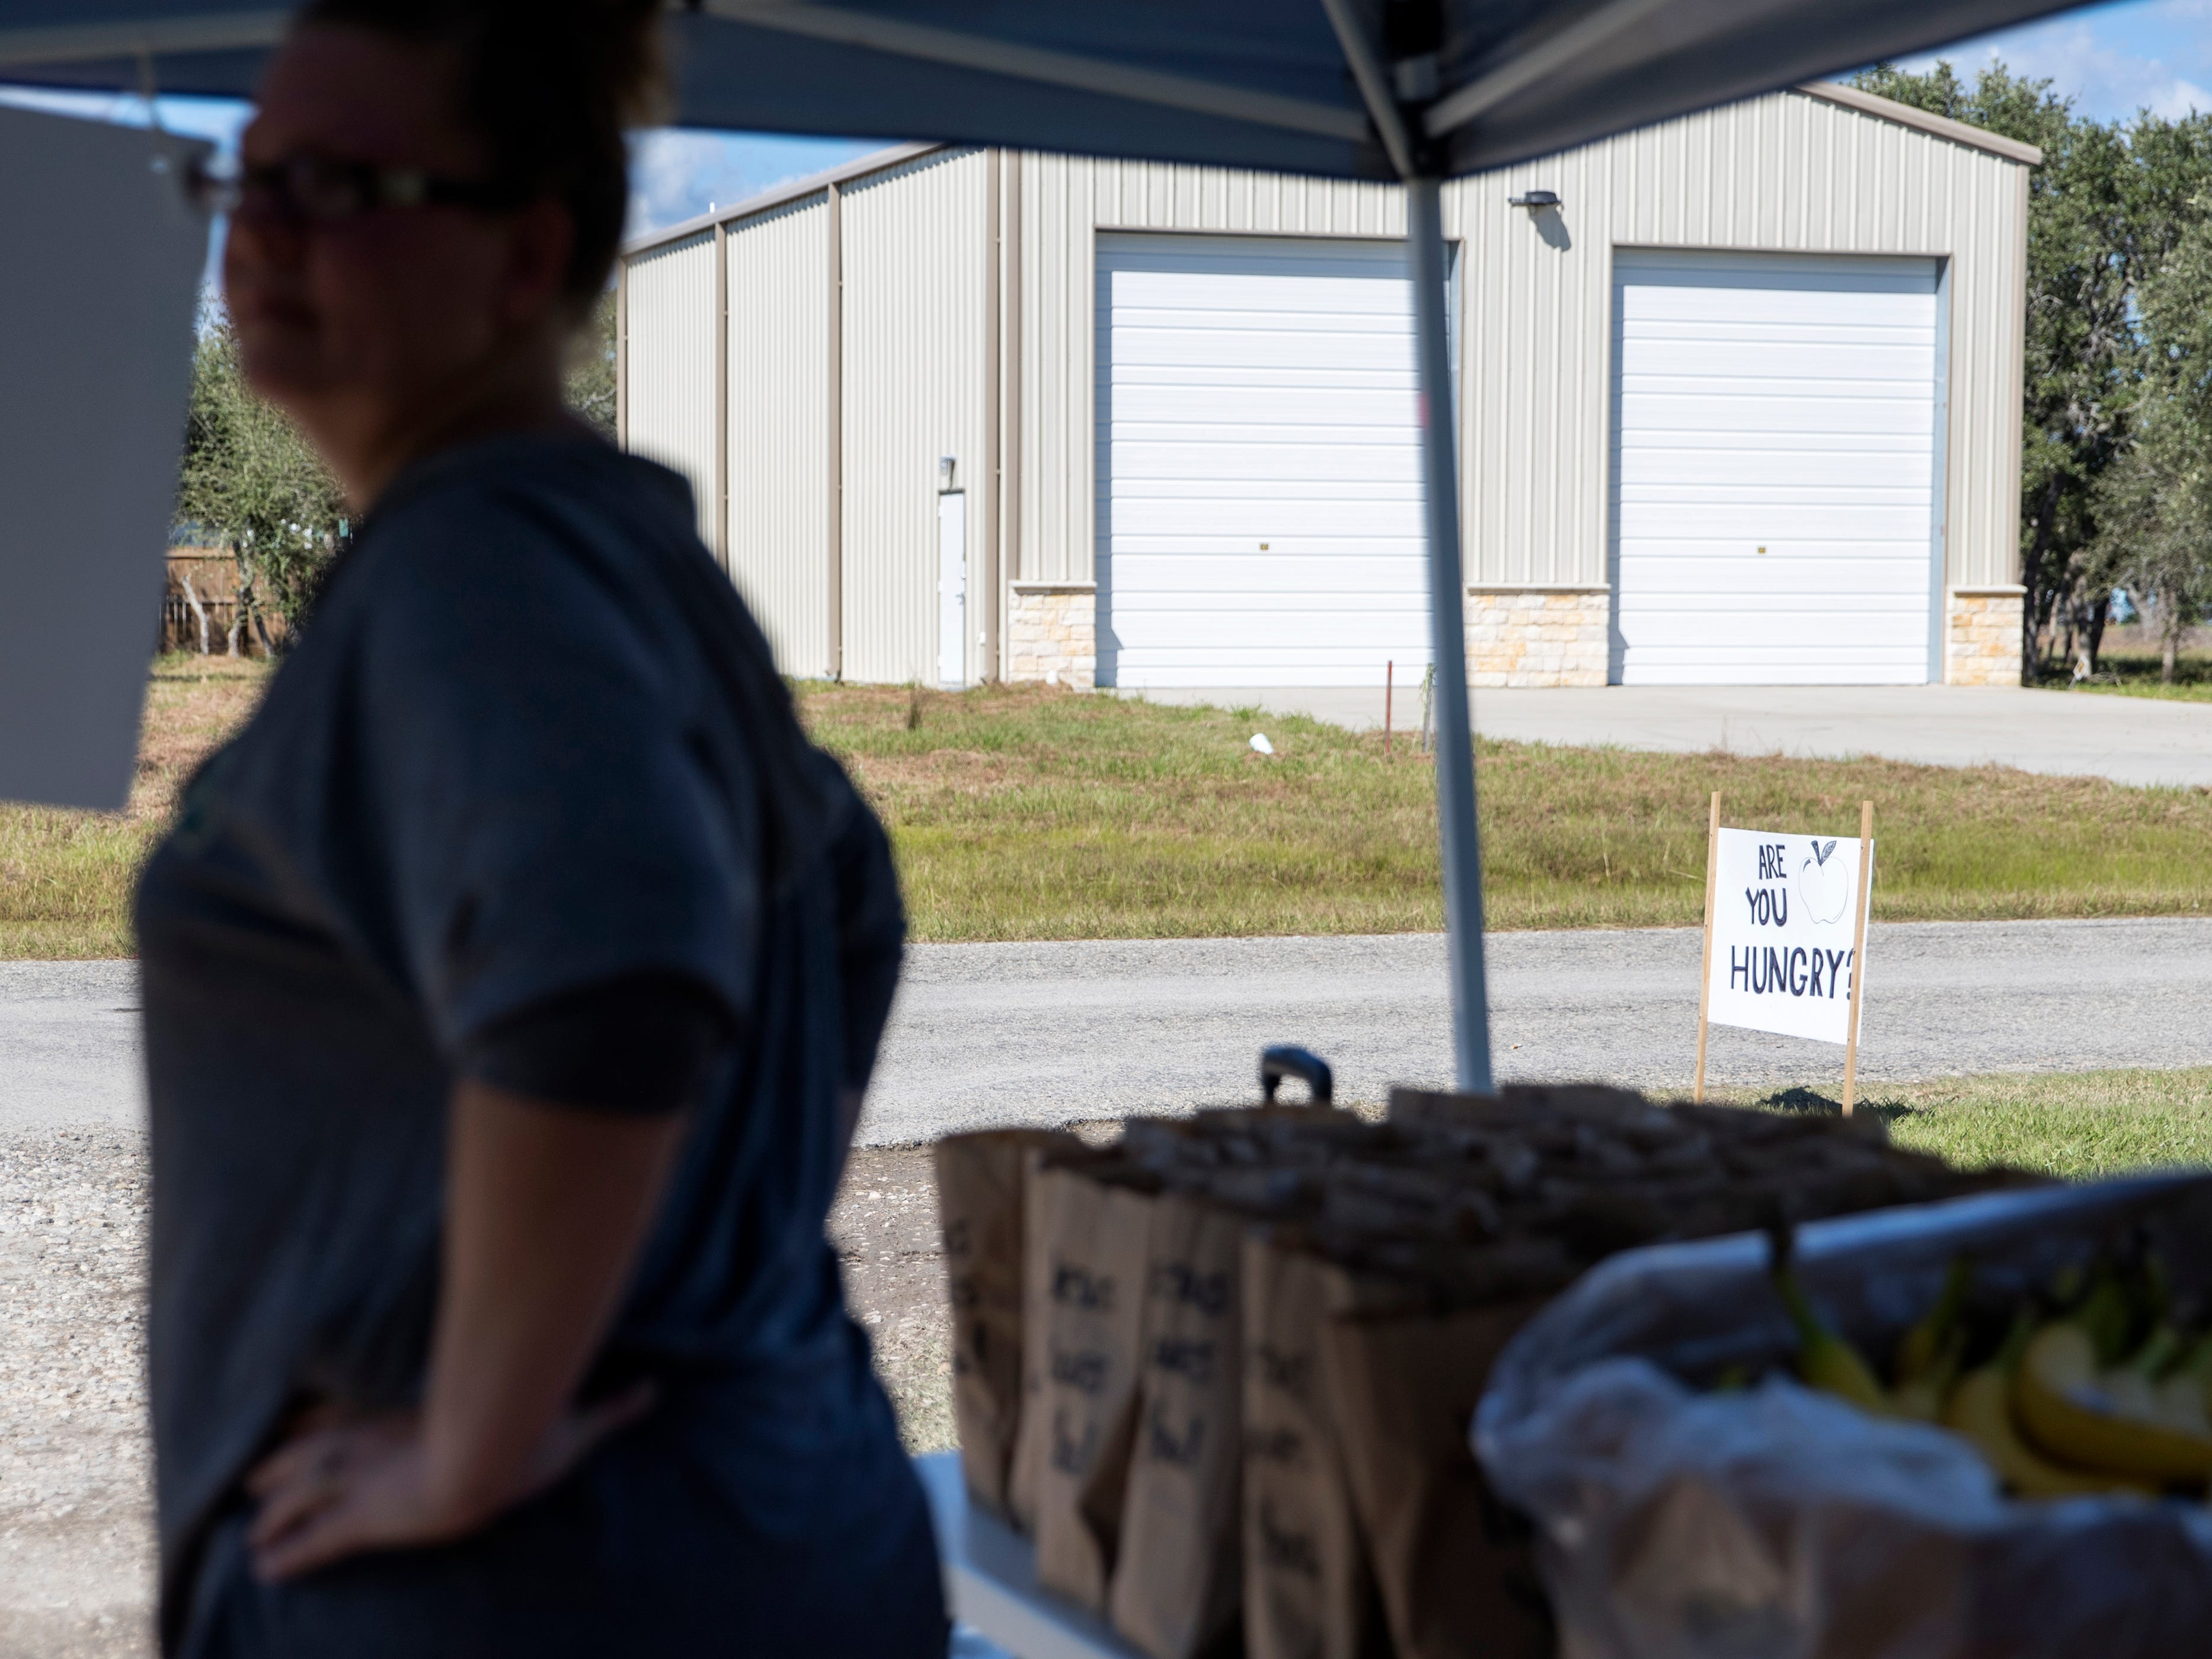 DeeDee Kilough gives away lunches from the end of her driveway at her home in Rockport on Monday, October 29, 2018. It is the second time she has given away lunches and the latest sack lunch also contained baked goods made by a friend. She said as a Christian she felt the need to give back to the community.